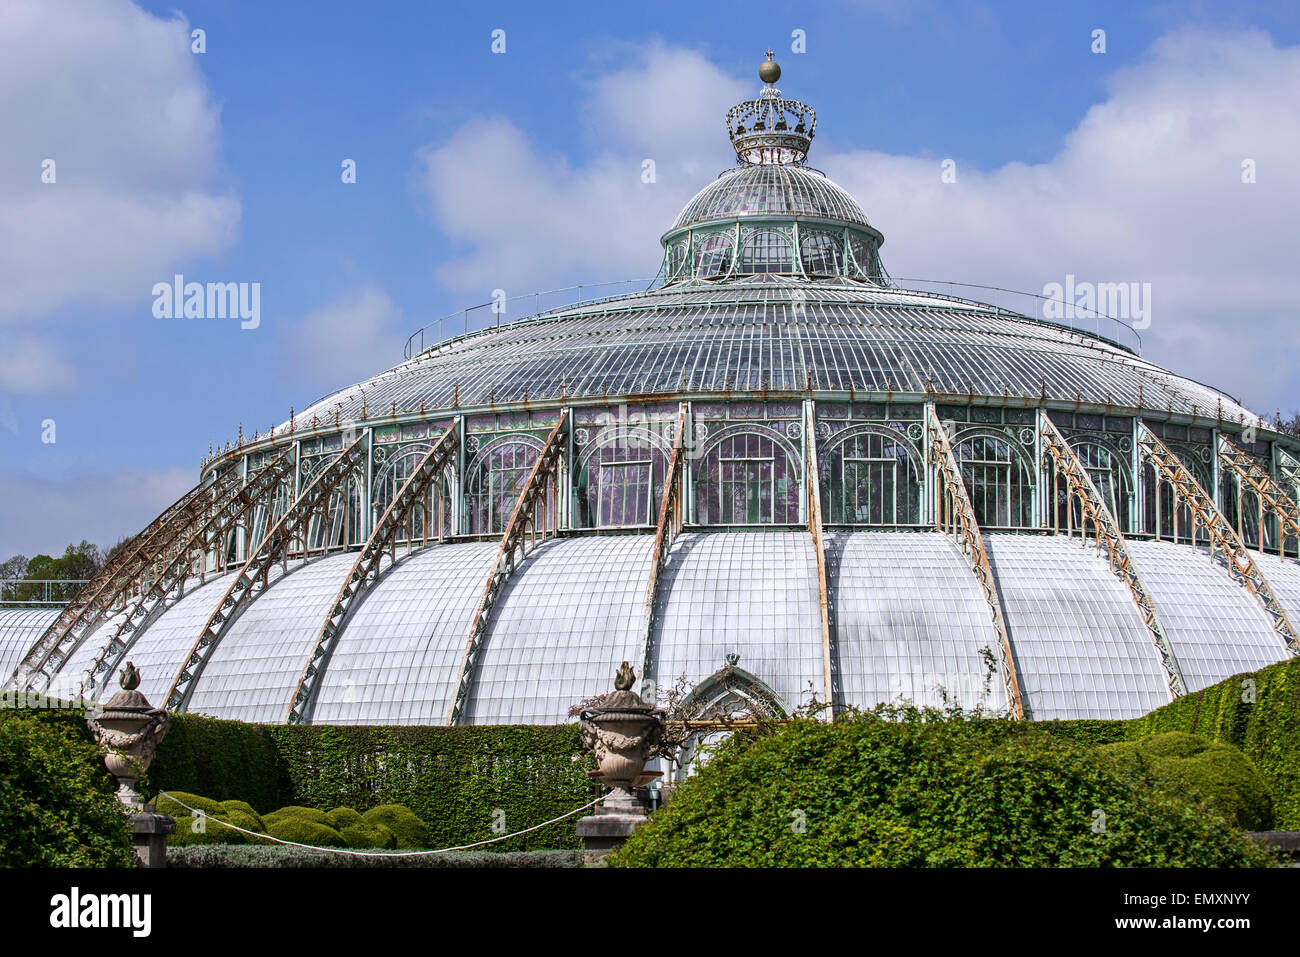 Dome of the Jardin d'hiver / Winter Garden in Art Nouveau style, Royal Greenhouses of Laeken, park of the Royal - Stock Image